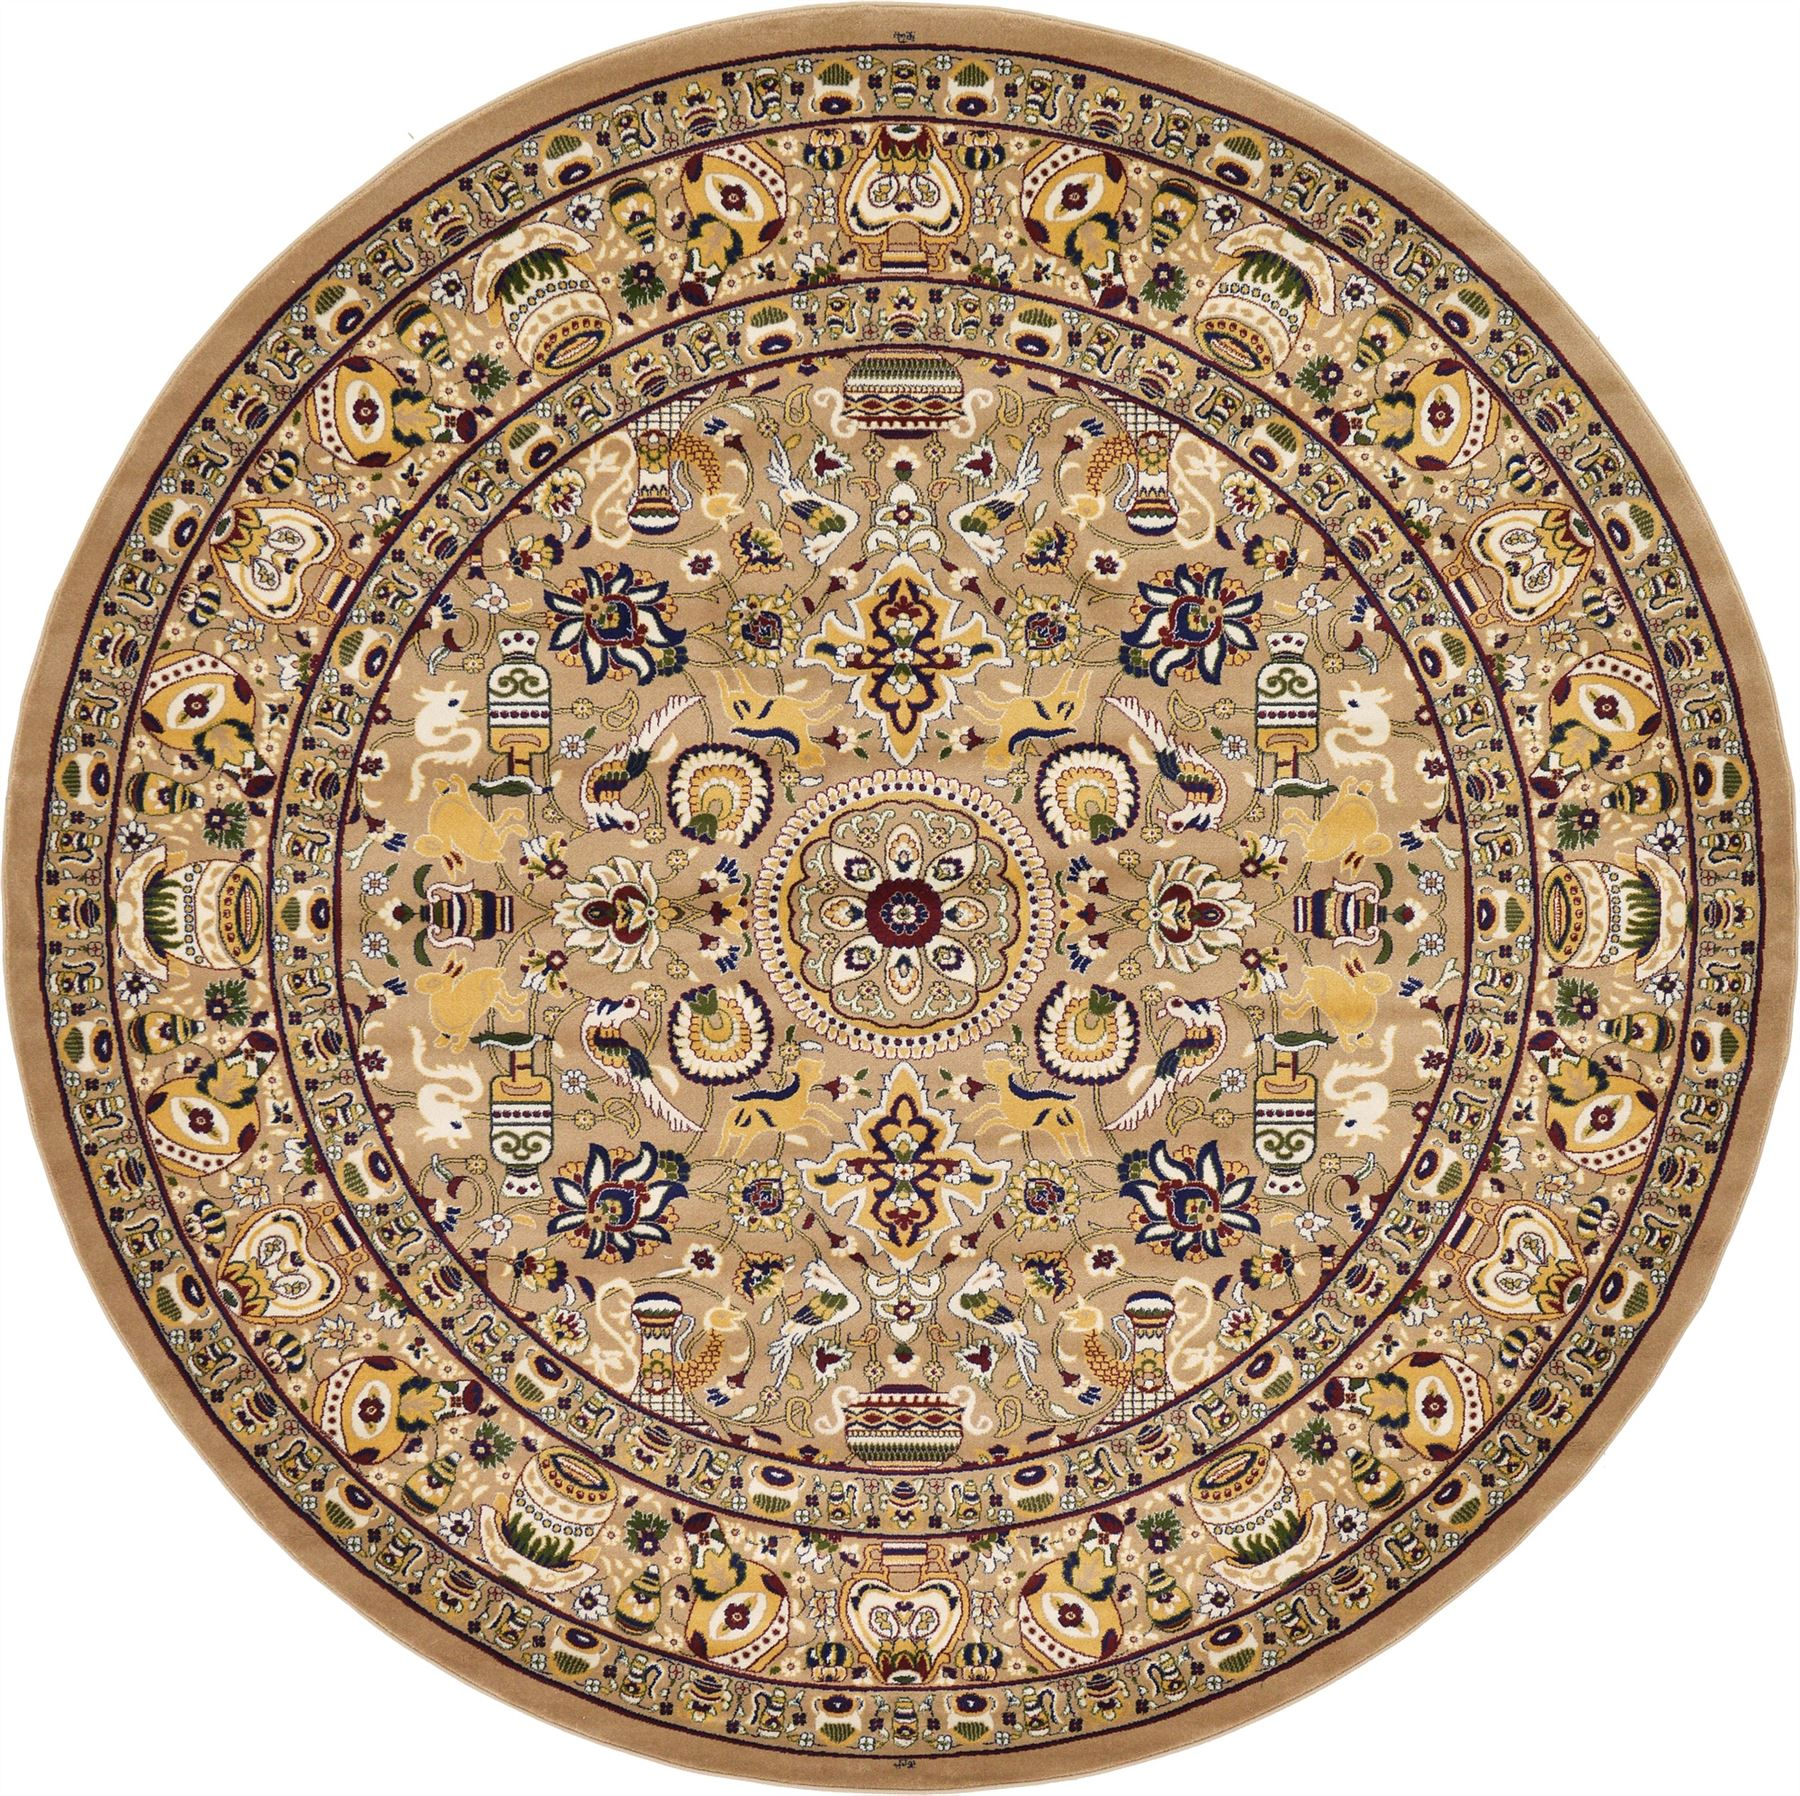 Vintage Circular Rug: Traditional Large Persian Design Area Rug Small Vintage